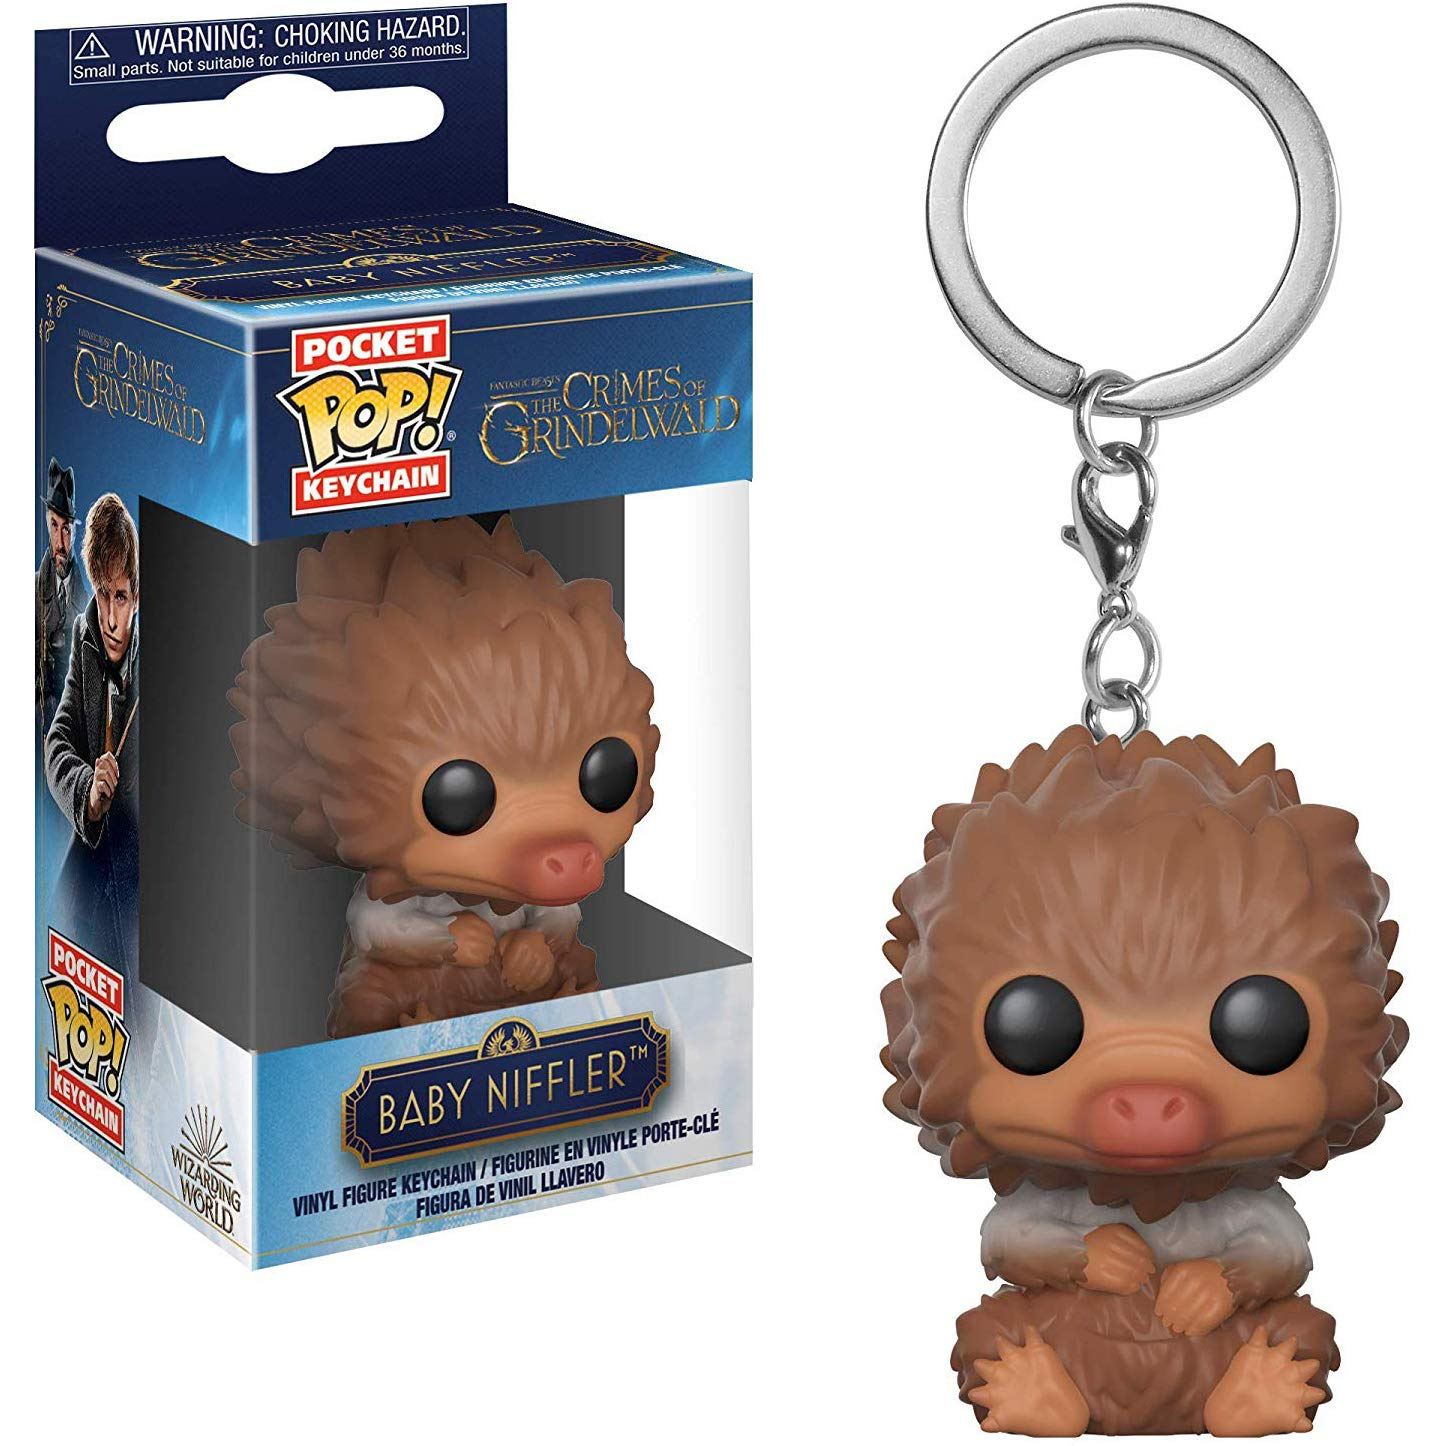 Amazon.com: Funko Baby Niffler: Fantastic Beasts - The ...